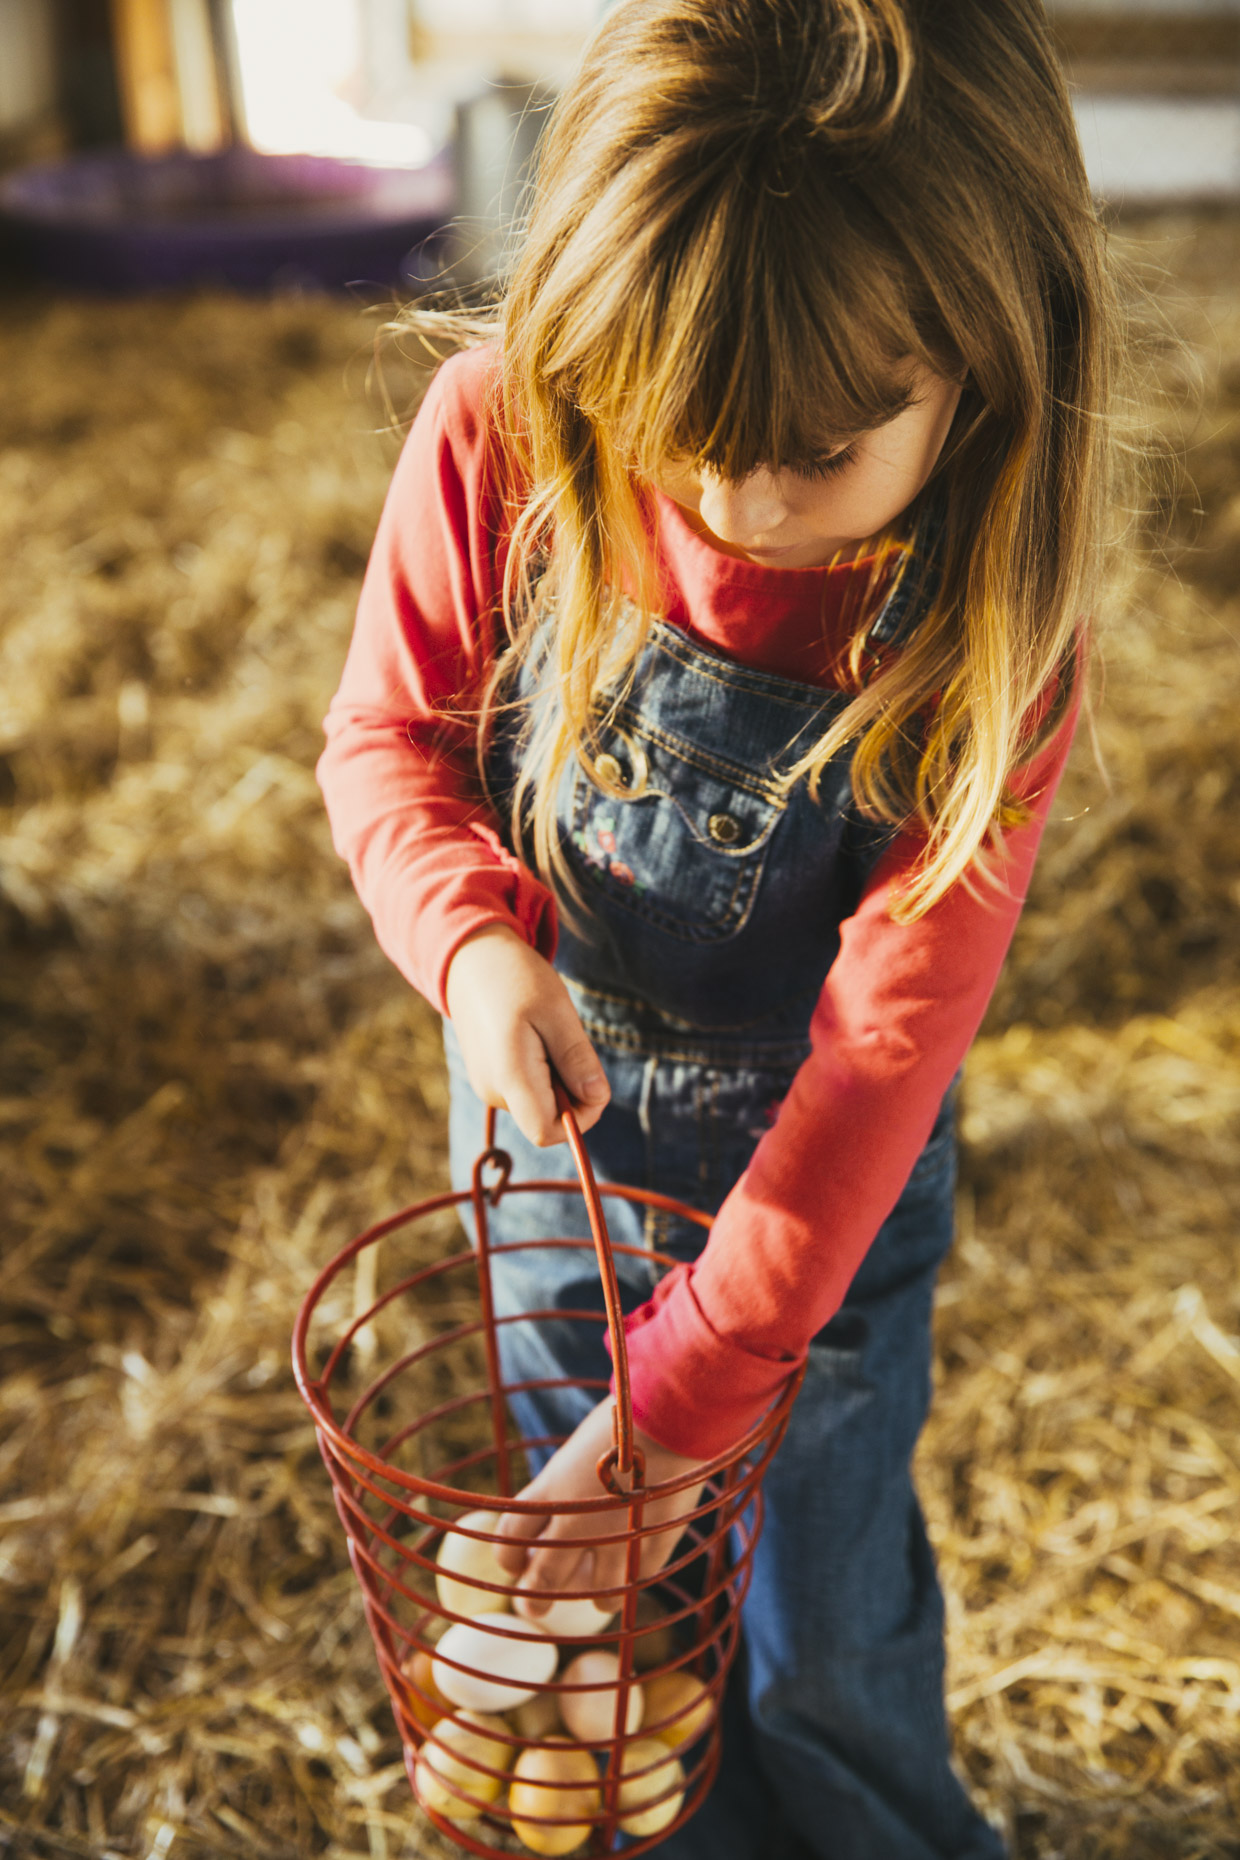 Girl collecting eggs in chicken coop